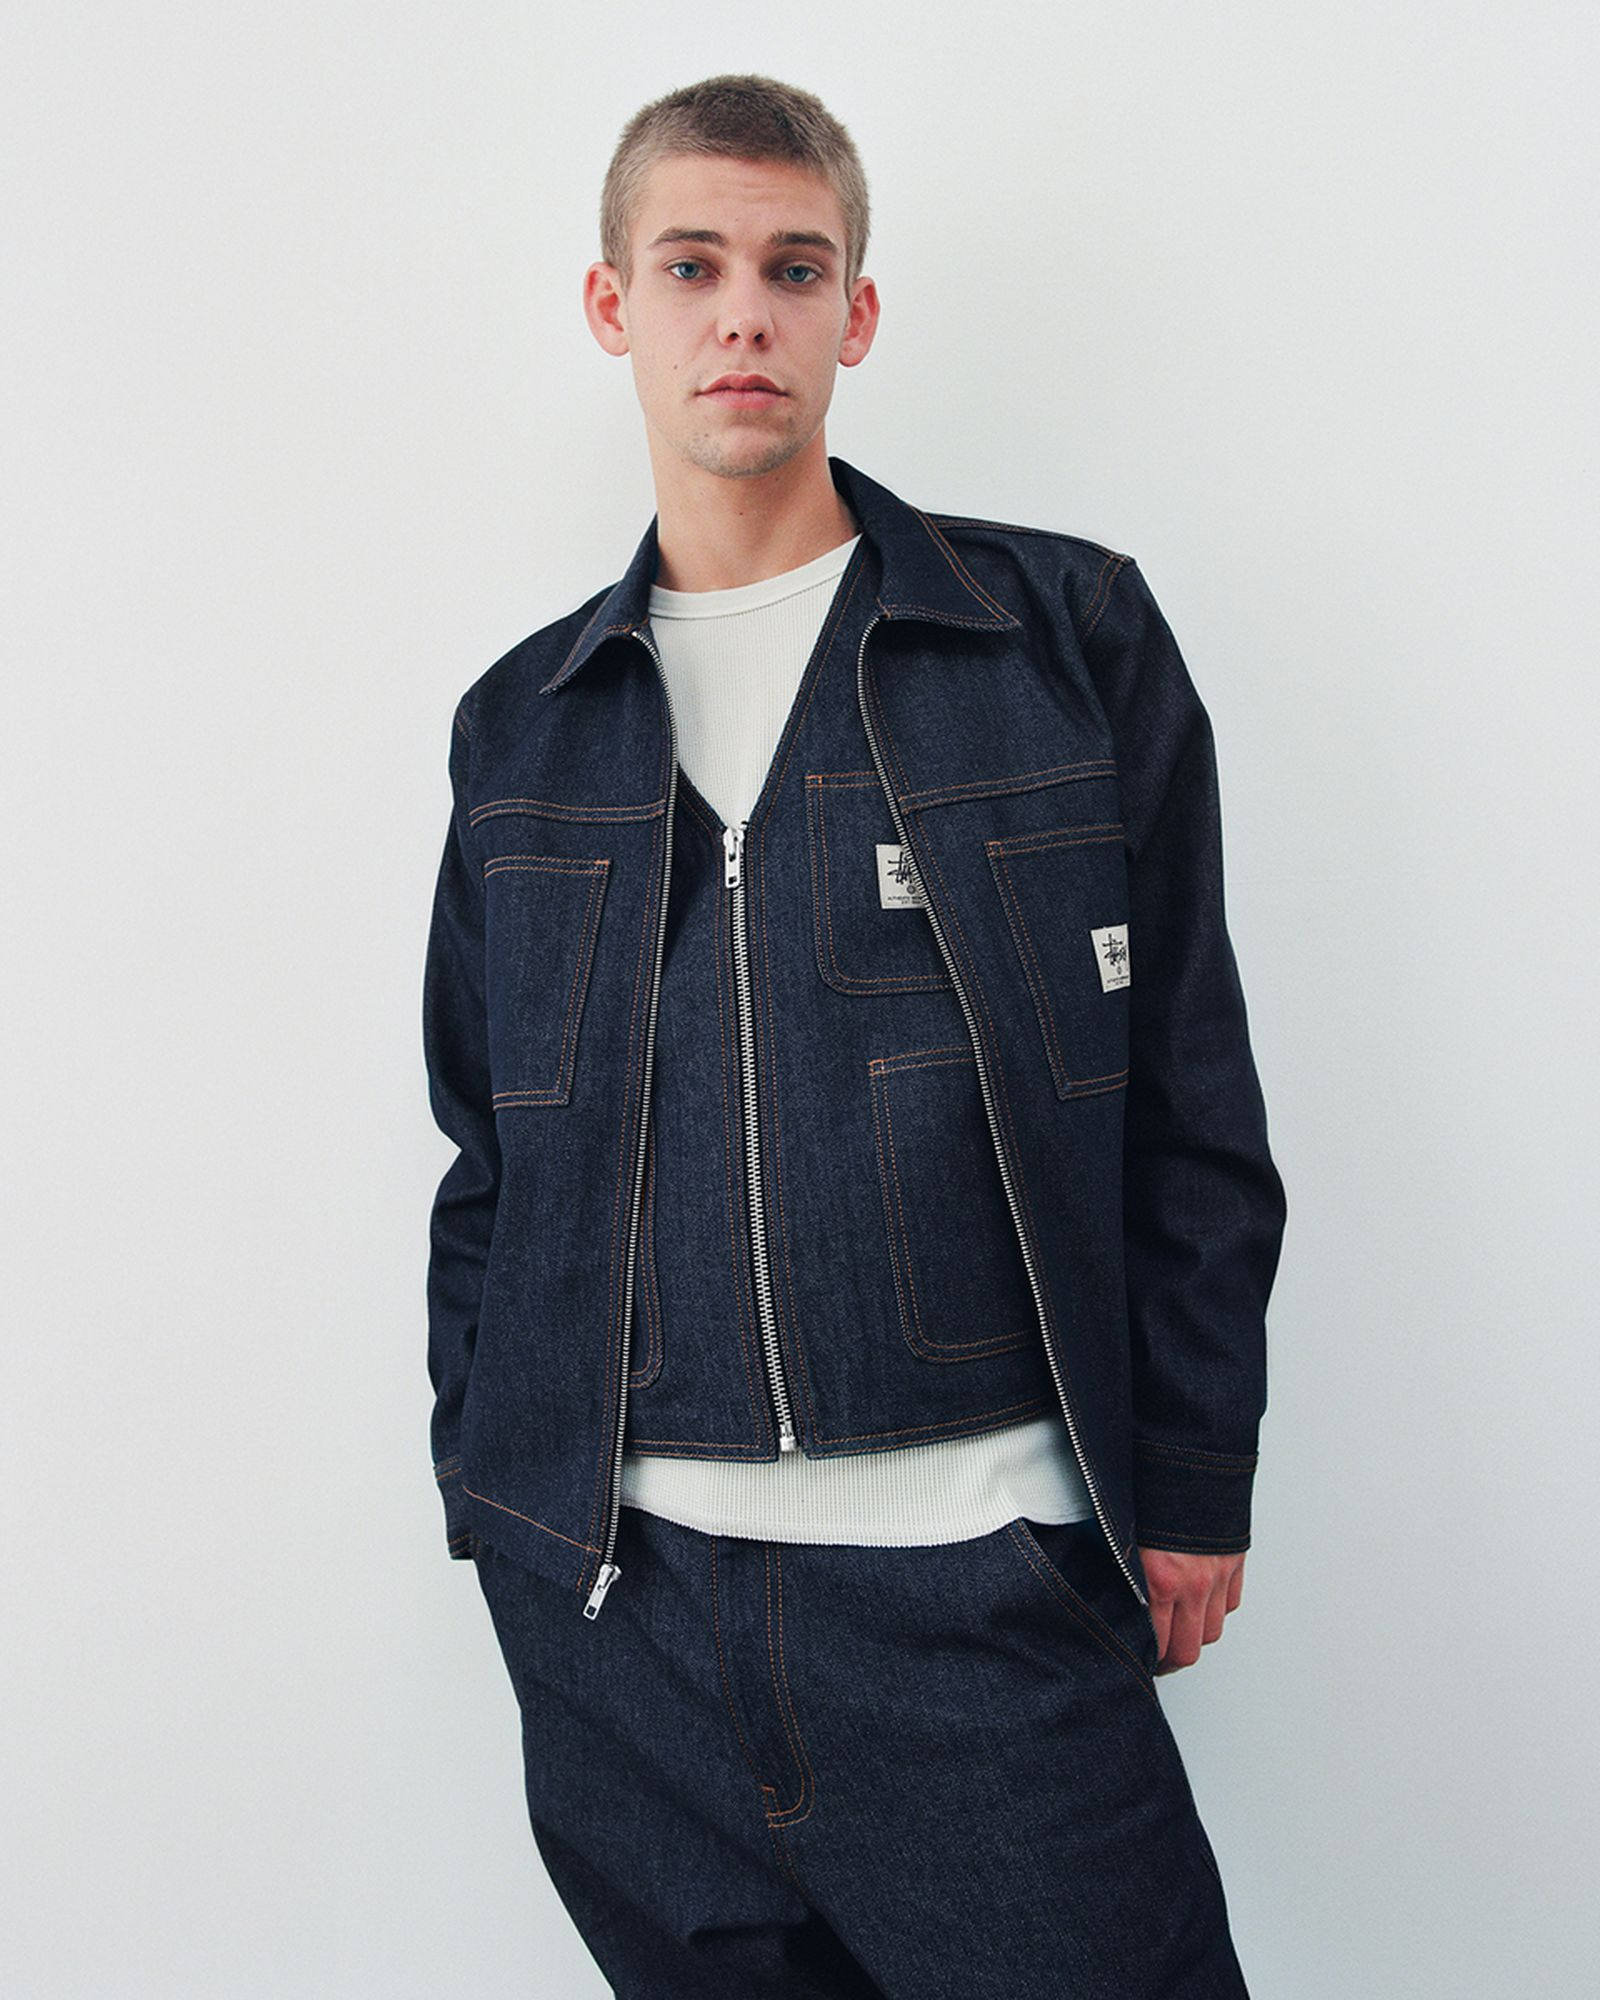 Stussy fall 2021 collection lookbook (18)